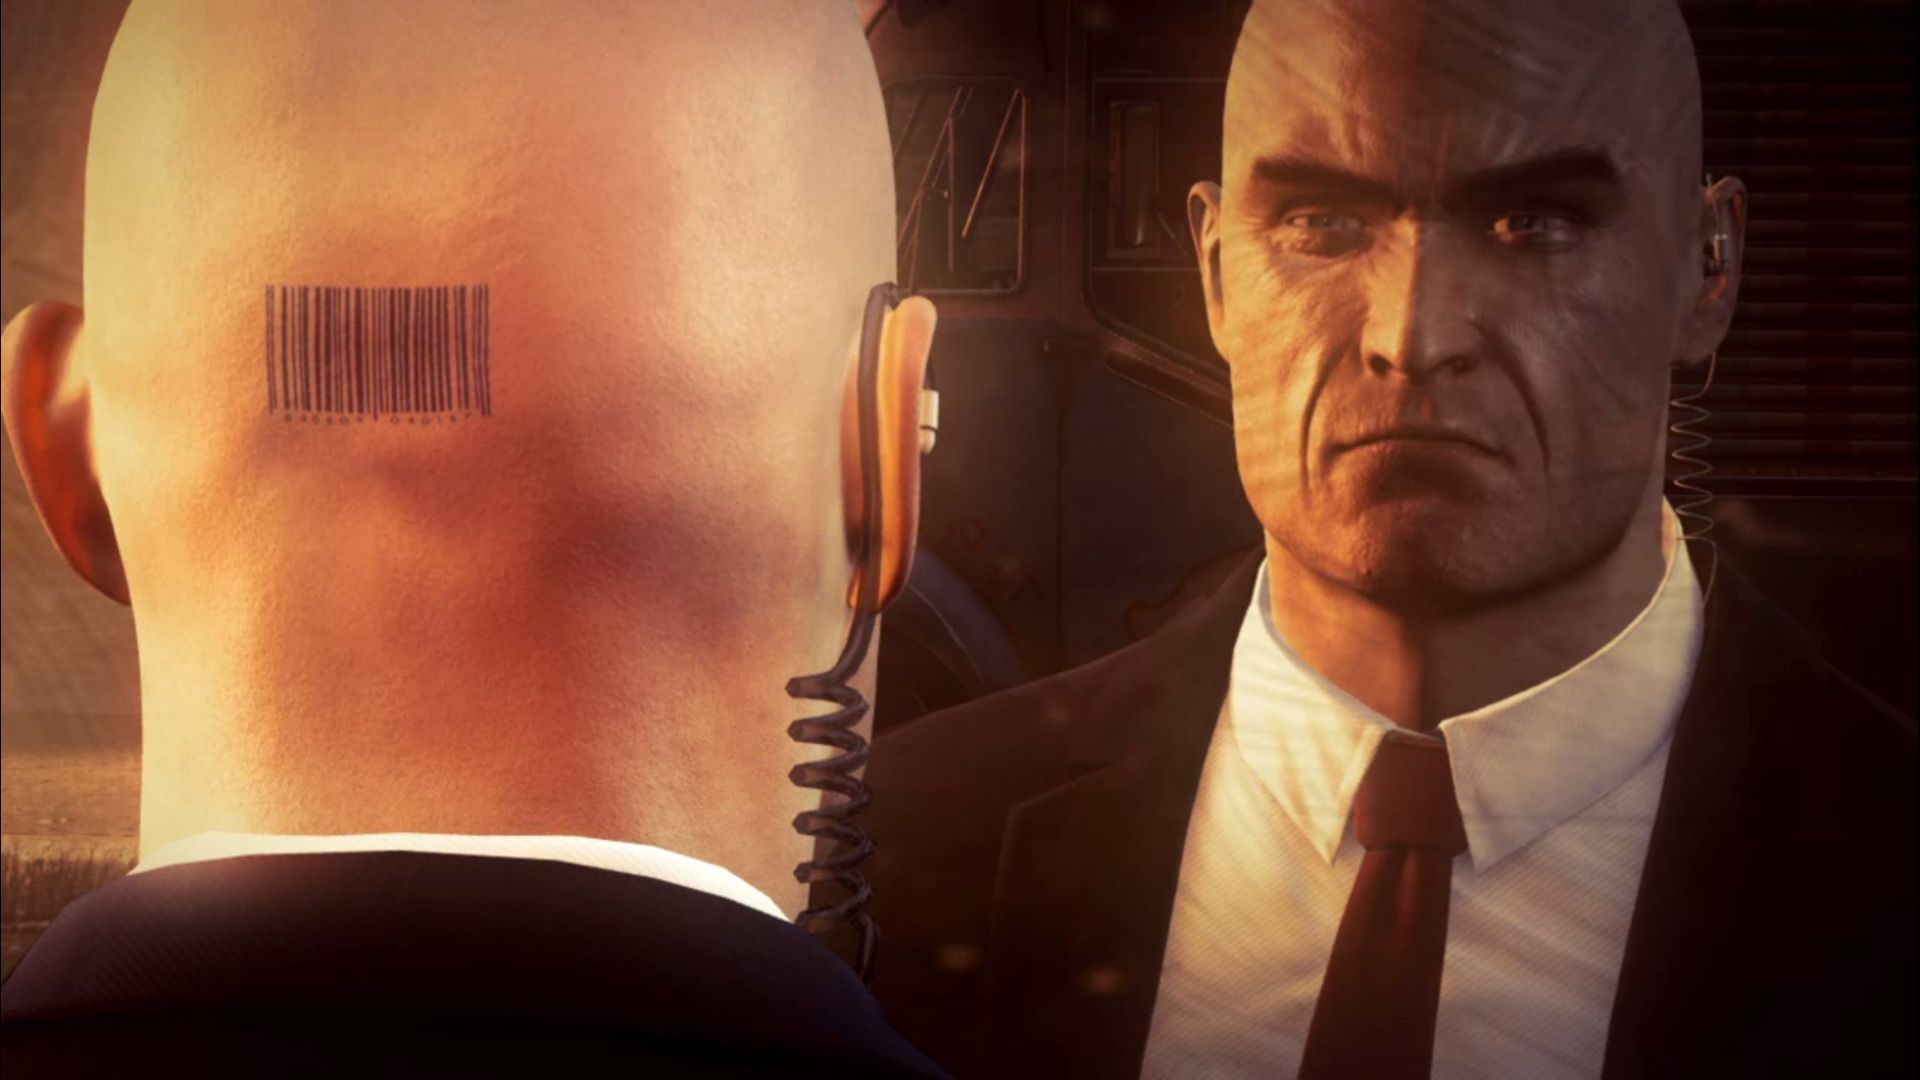 Hitman's Agent 47 staring at himself in a mirror. We can see the back of his head and the barcode, and his grimacing face